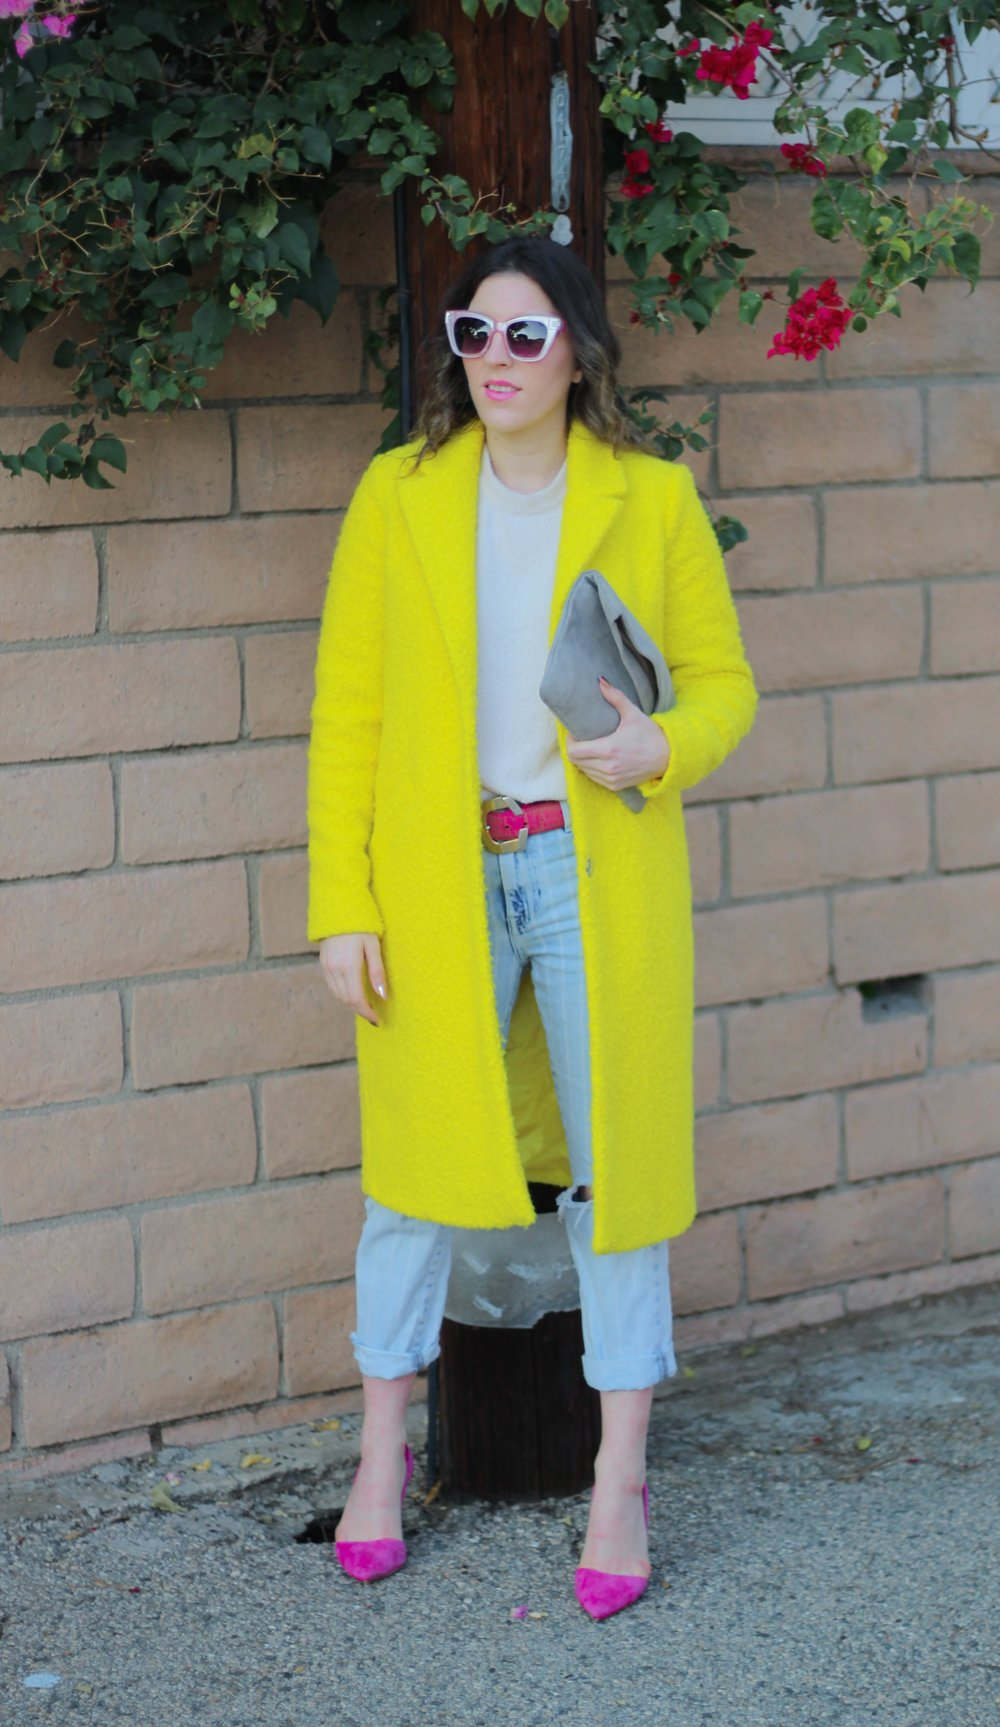 Coat:   River Island   // Top: similar   here   // Belt: Vintage, similar   here   // Denim:   F21   // Shoes: similar   here   // Clutch: similar   here   // Sunnies: similar   here